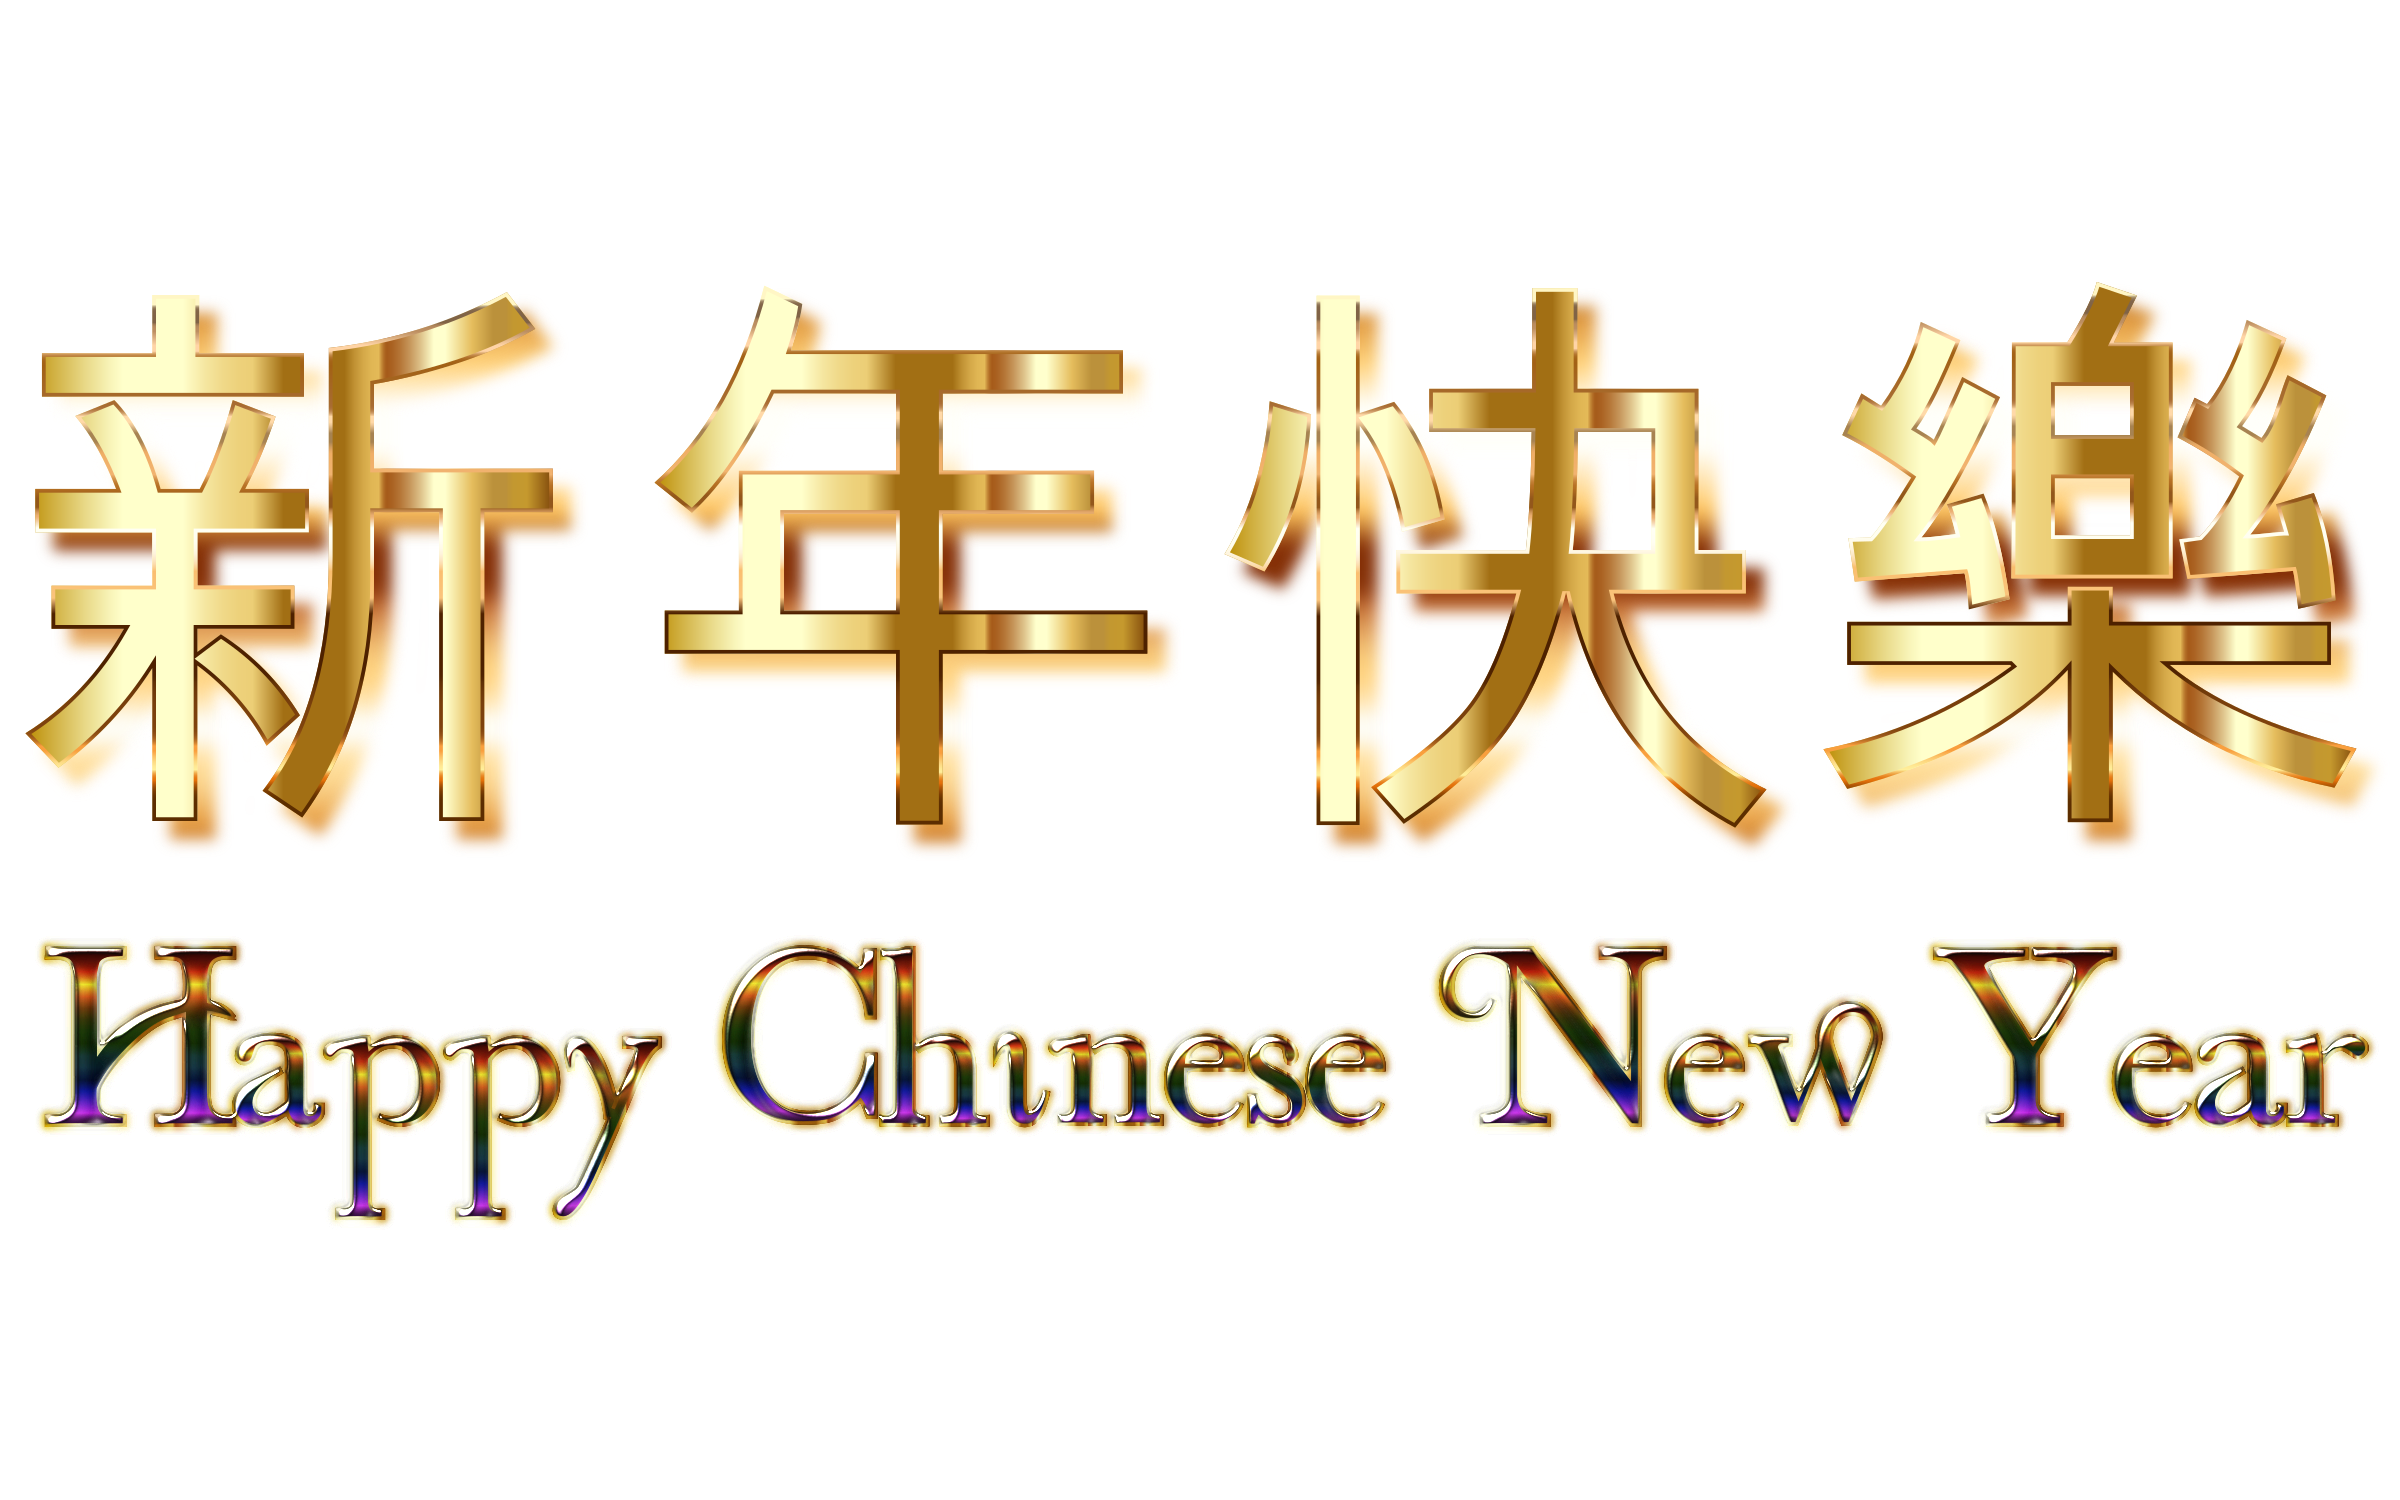 clipart happy chinese new year 2016 enhanced no background - Happy Chinese New Year In Mandarin